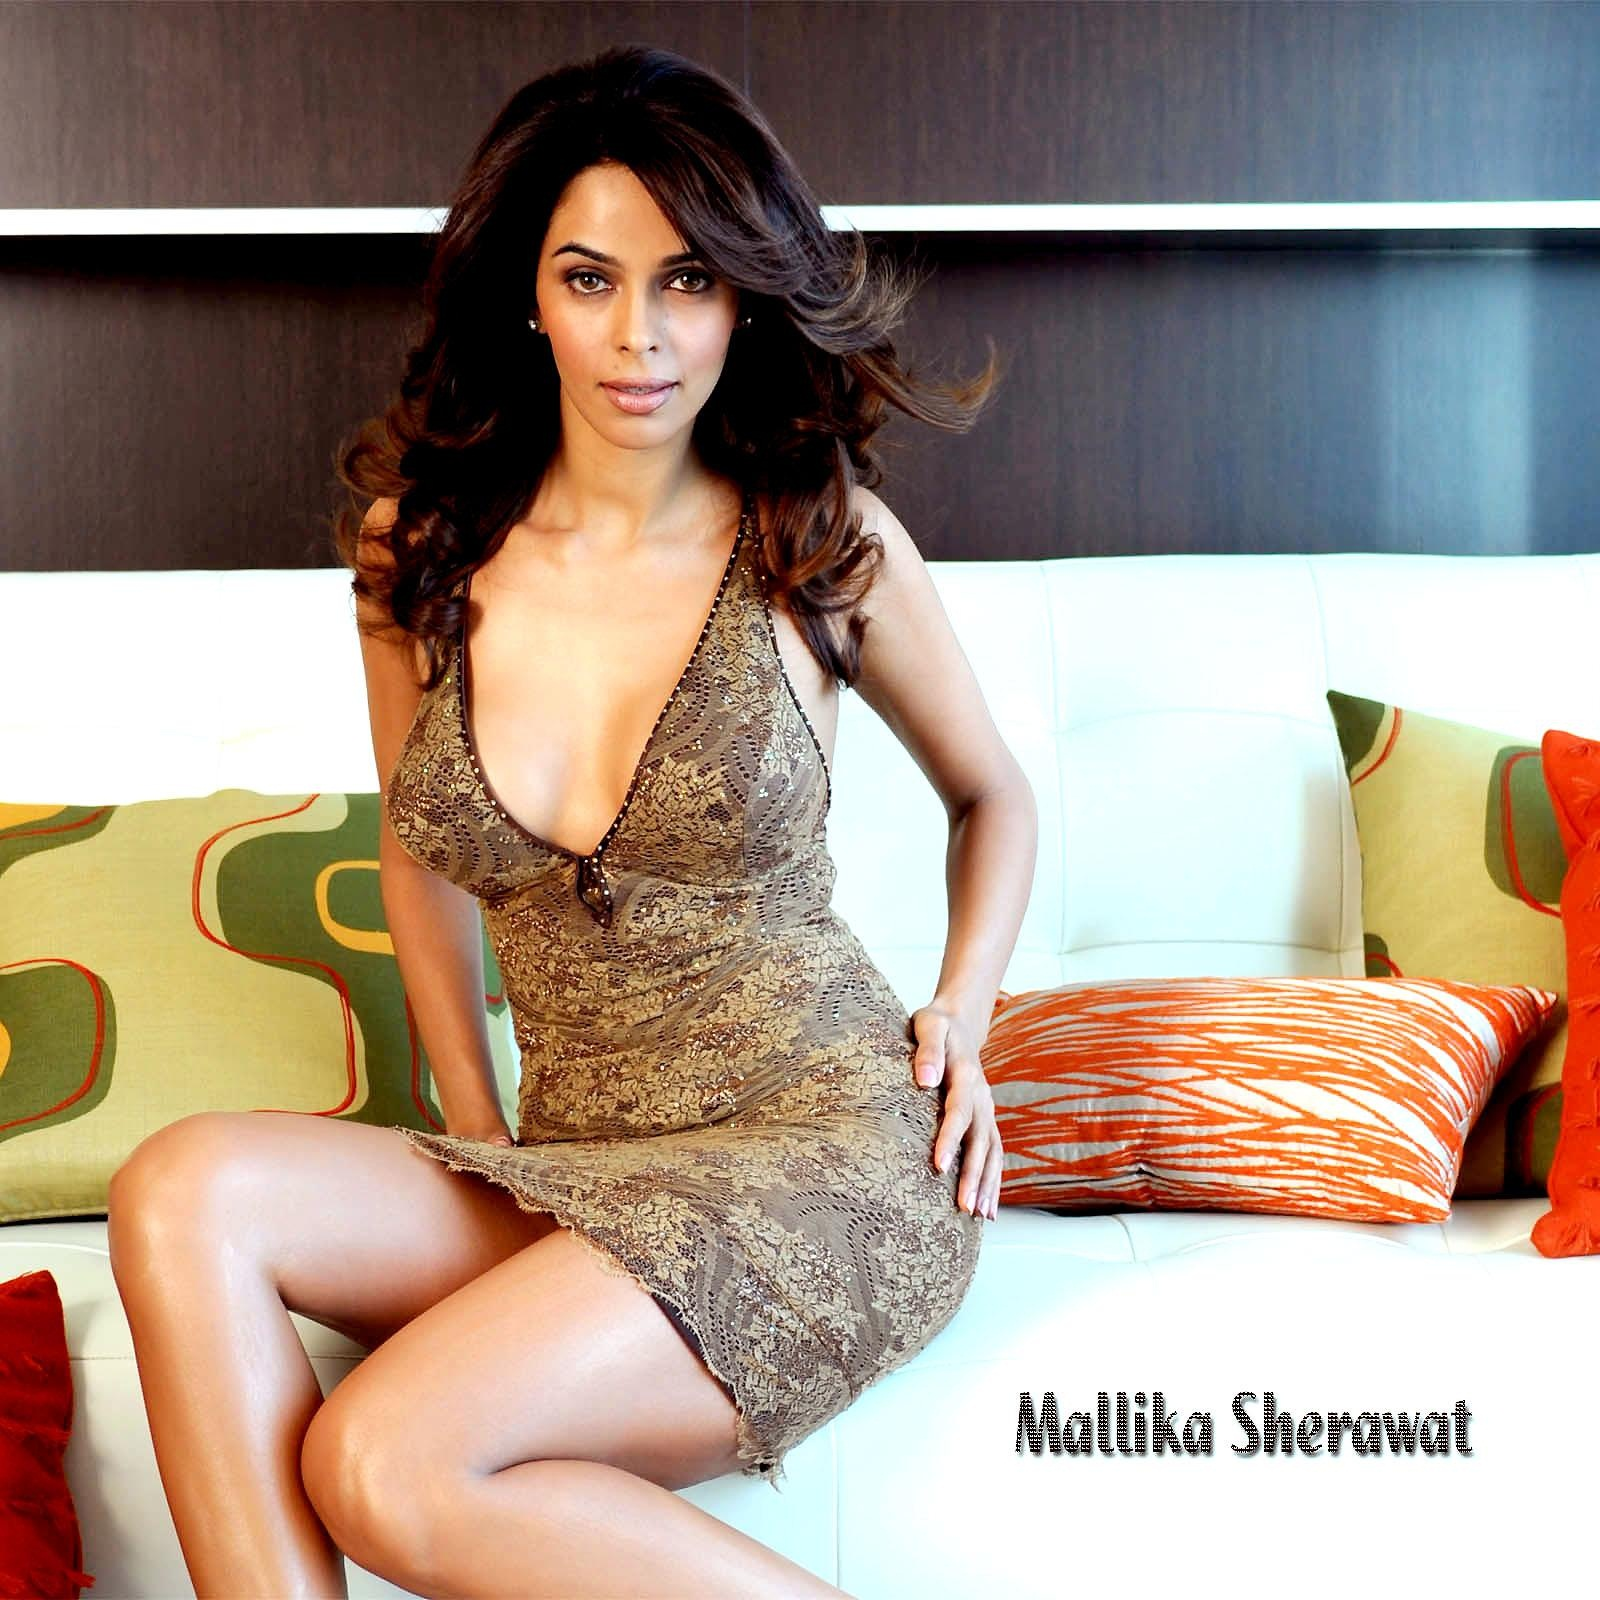 mallika sherawat hot hd wallpaper